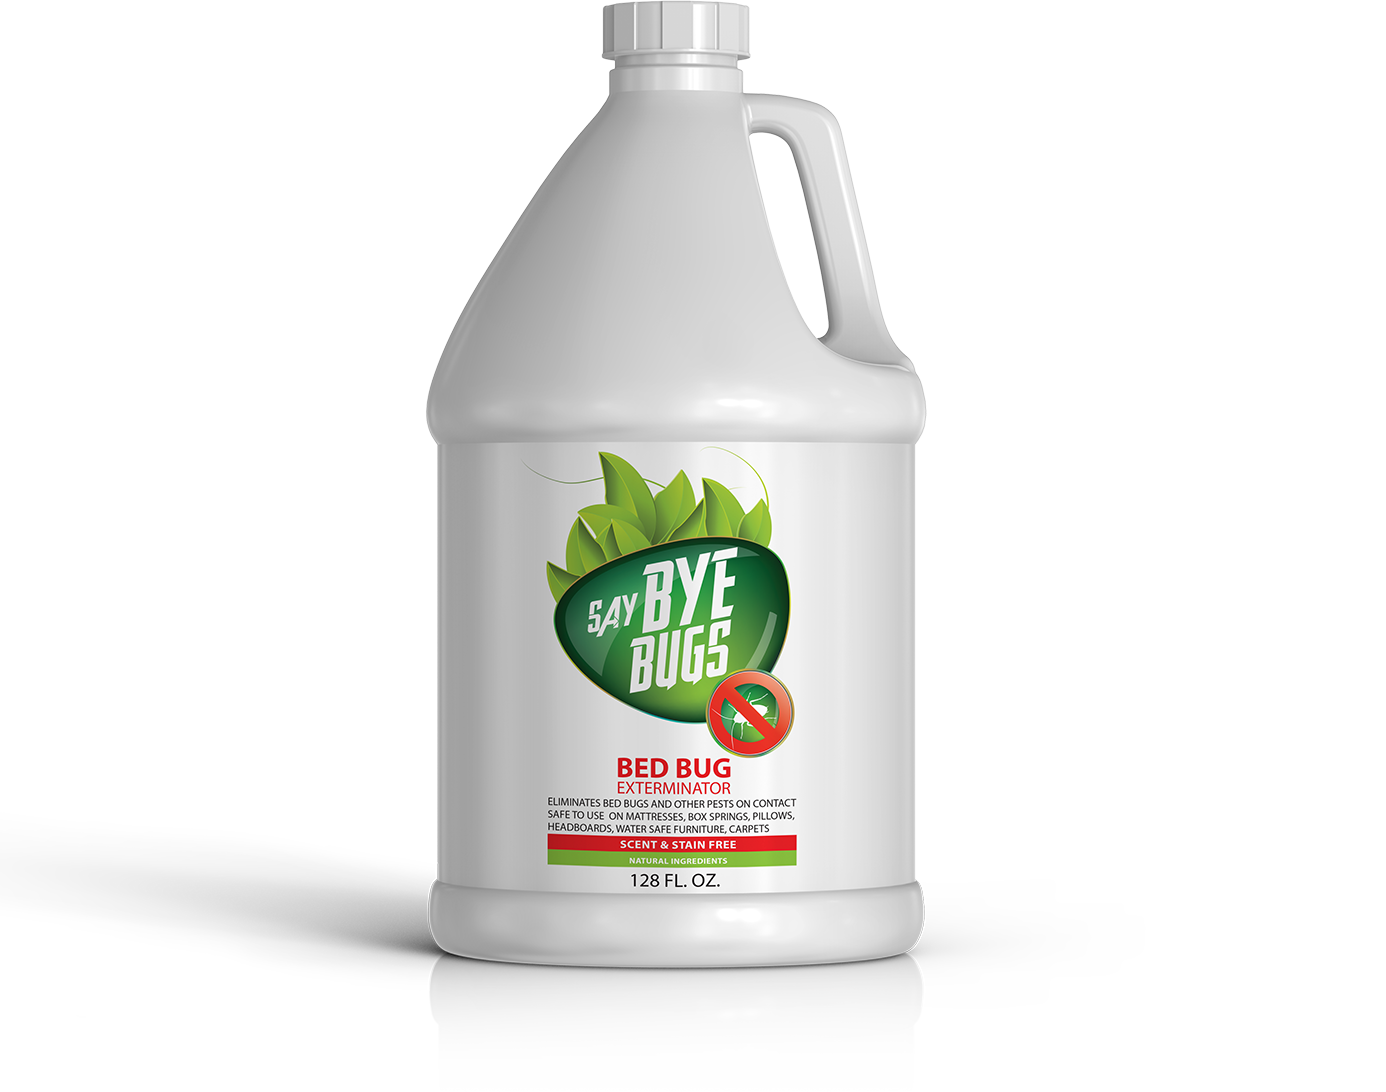 saybyebugs bed bug spray 1 gallon